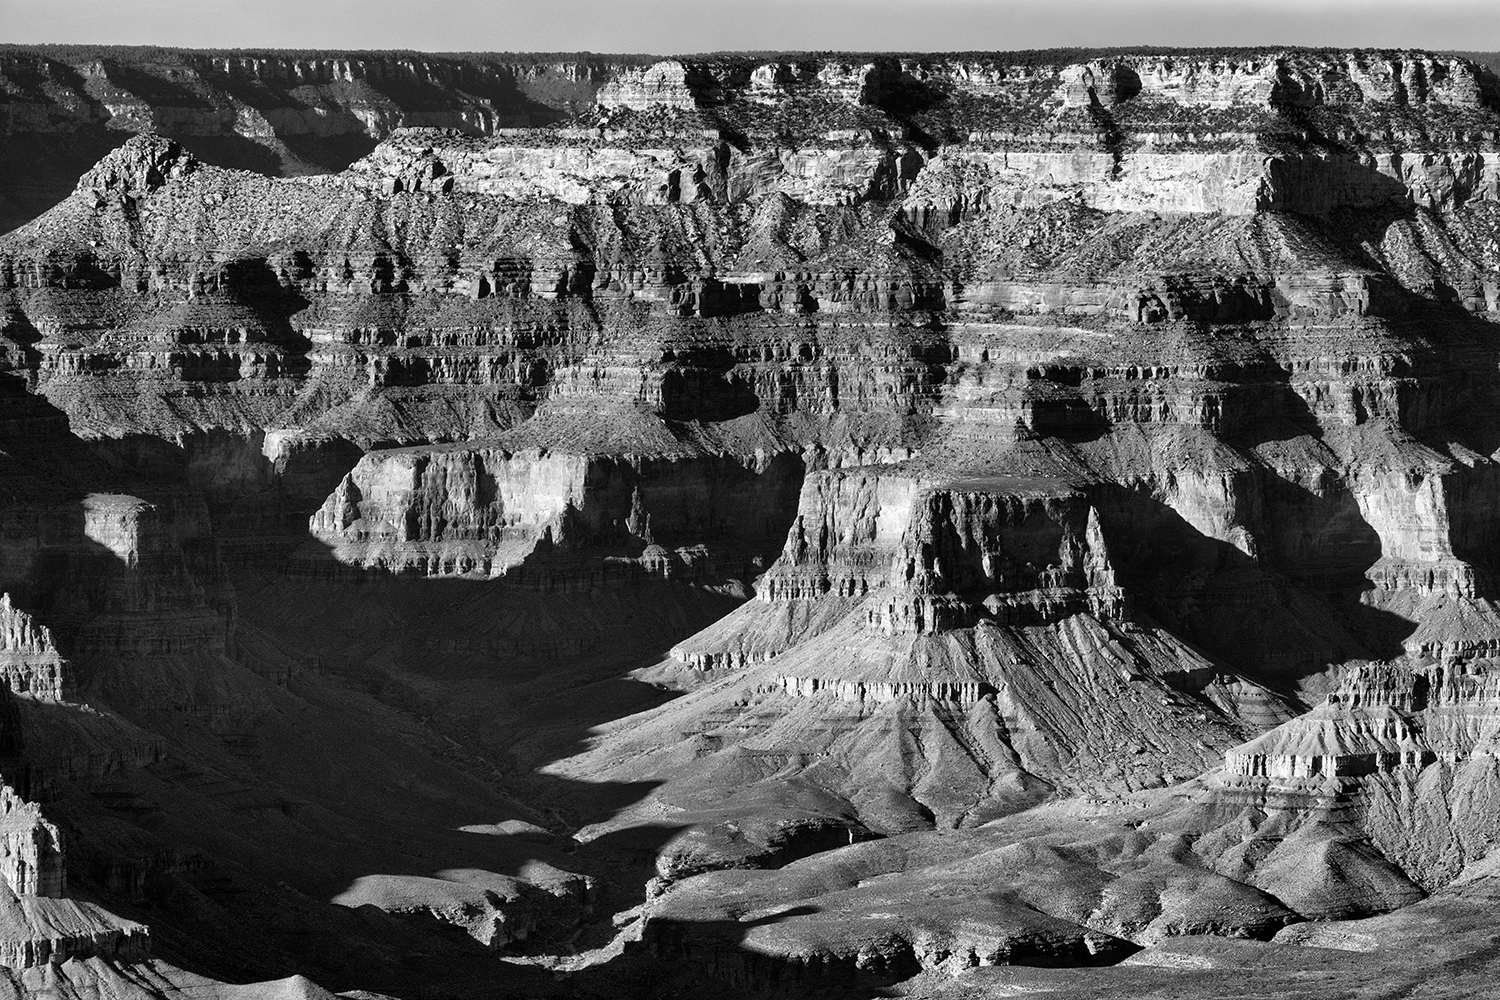 171128 Grand Canyon 82-1 bw.jpg